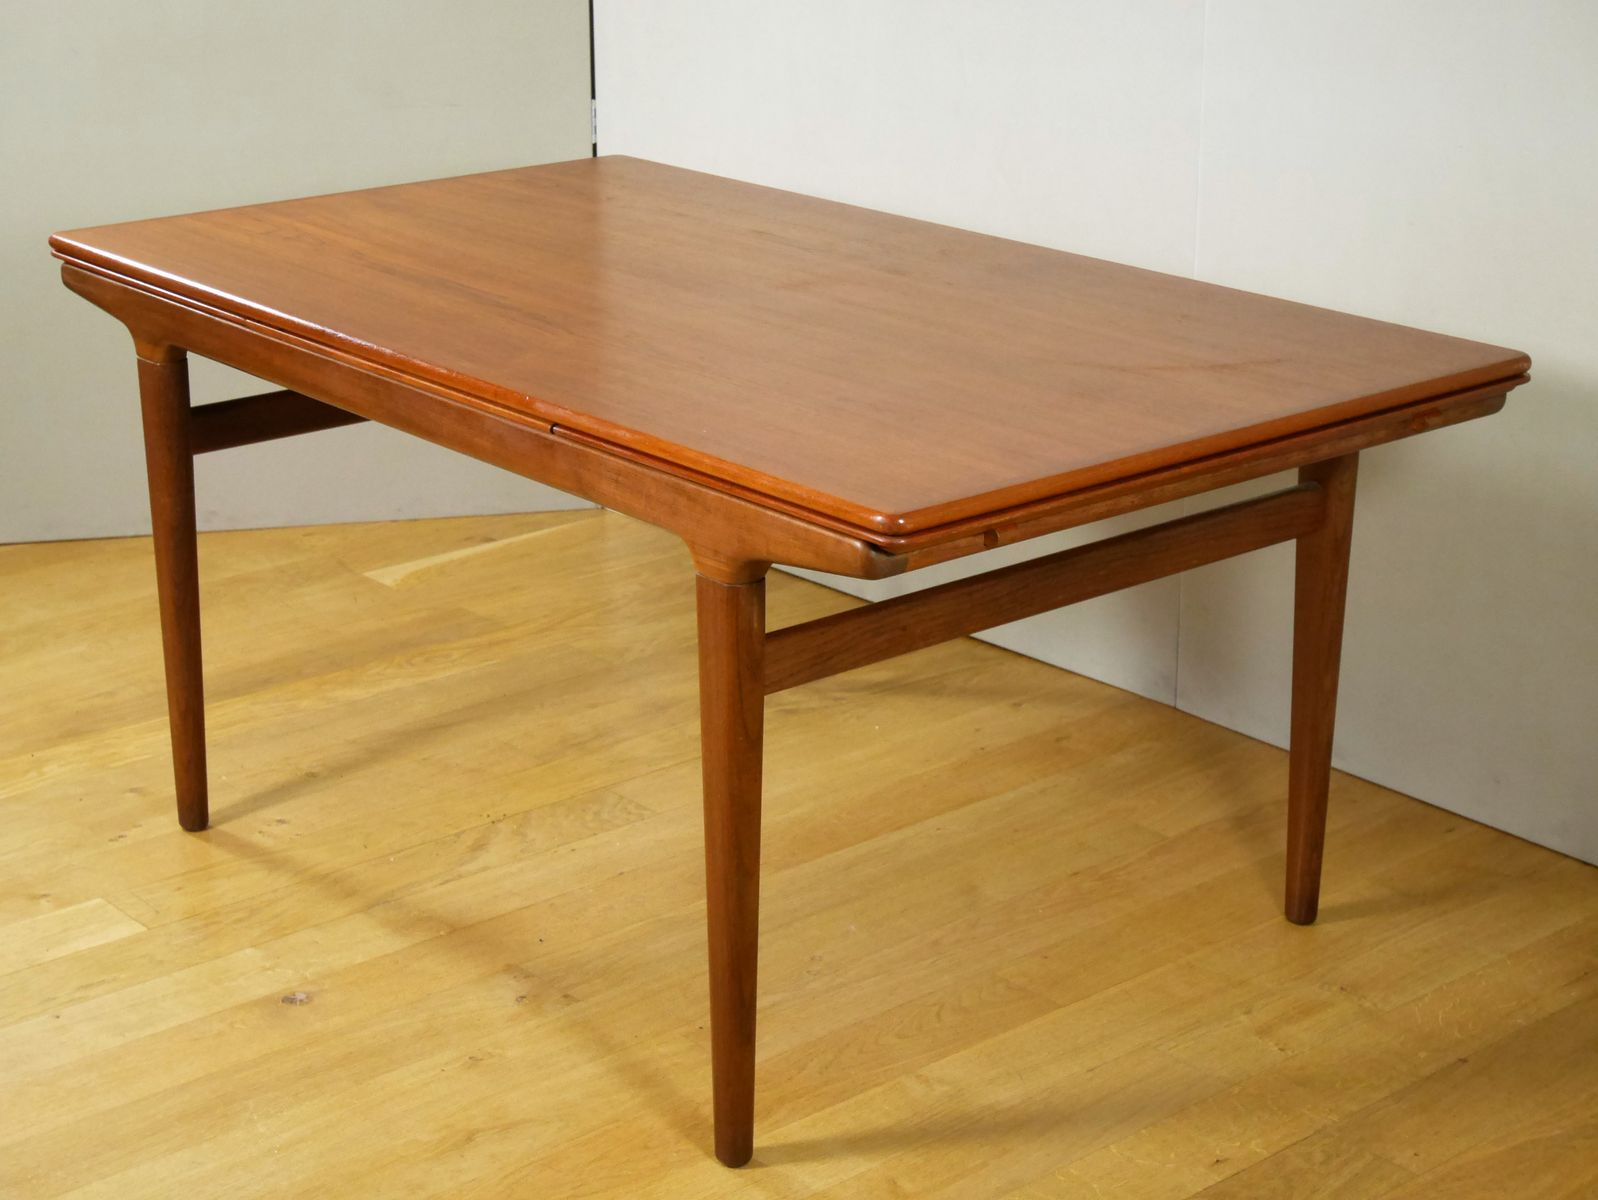 Table de salle manger rallonge scandinave par johannes for Table rallonge scandinave